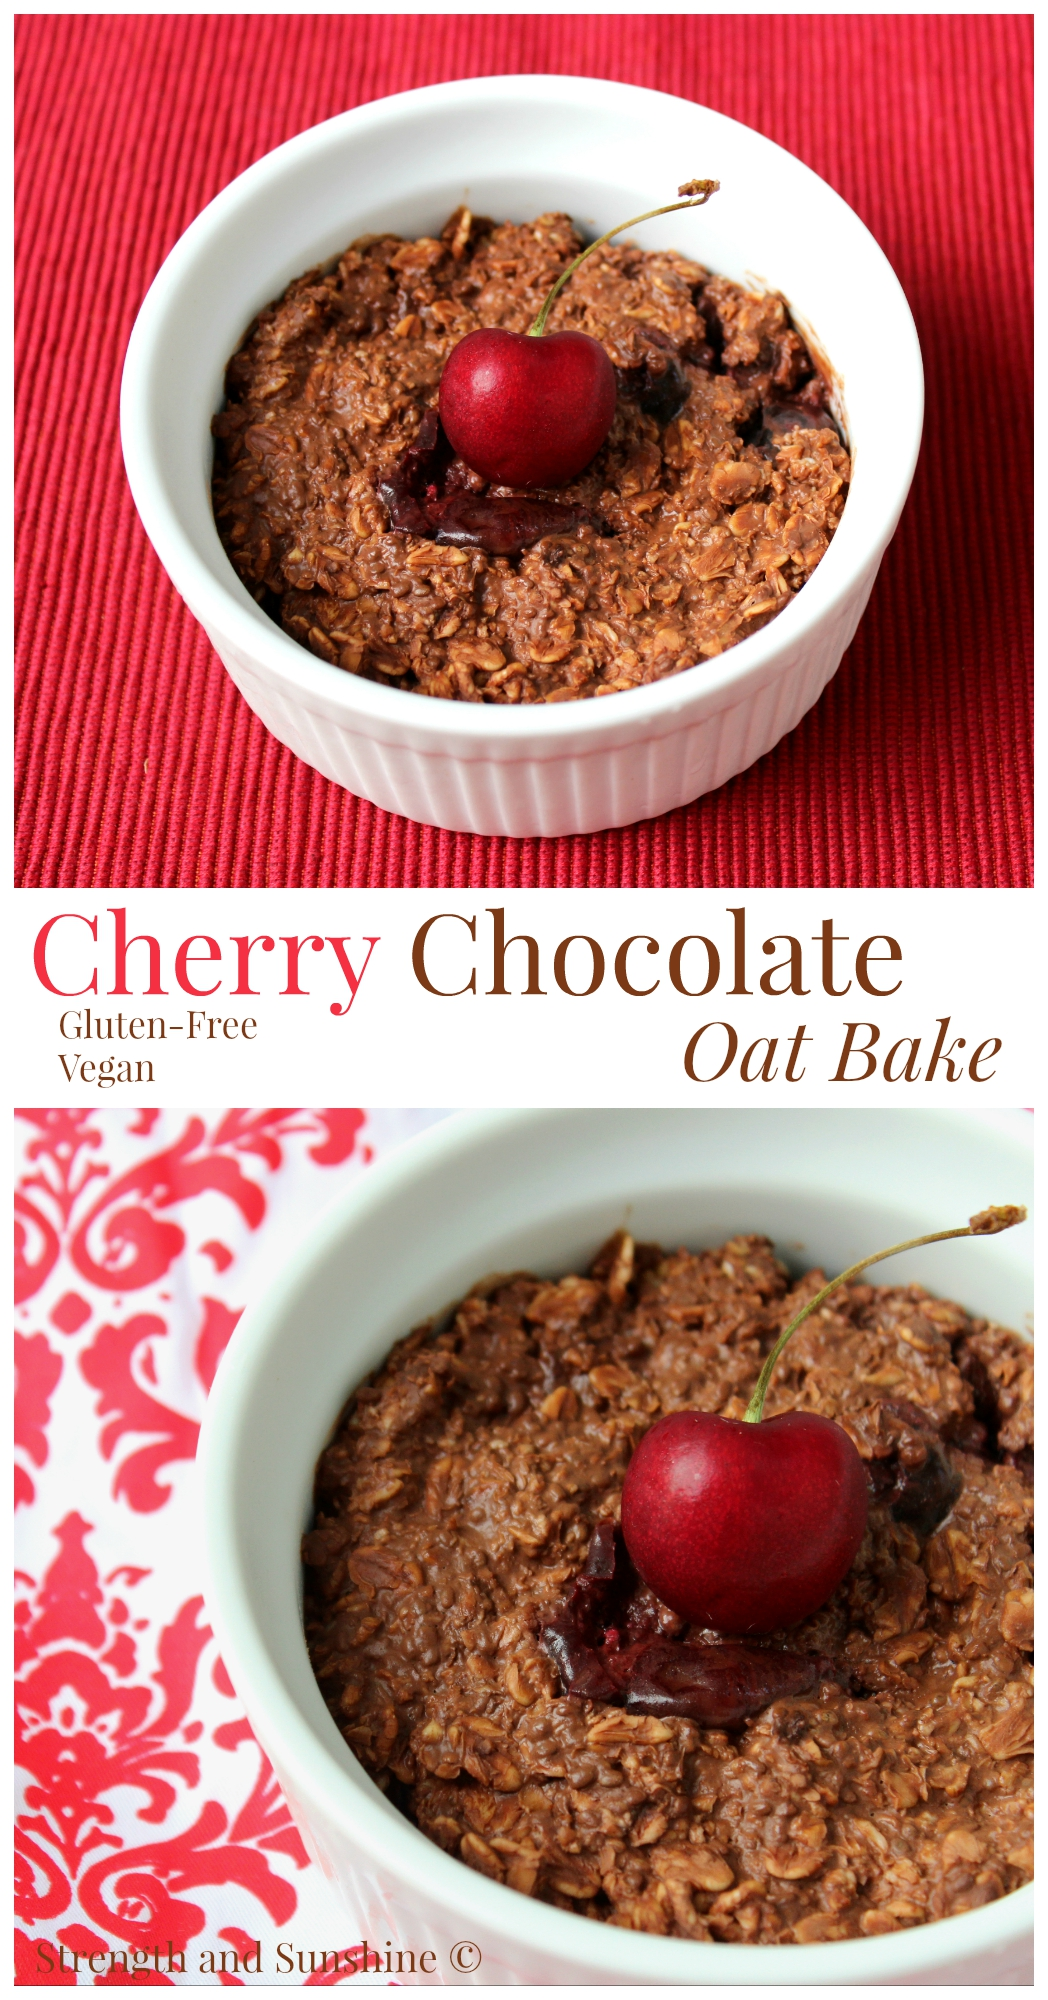 Cherry Chocolate Oat Bake | Strength and Sunshine @RebeccaGF666 Cherries. One of the sweetest, decadent fruits of the season. Dark red sweetness paired with the luxurious smooth taste of chocolate will have you dreaming about breakfast all night long! Gluten-free and vegan, this healthy Cherry Chocolate Oat Bake will beckon you to the breakfast table!